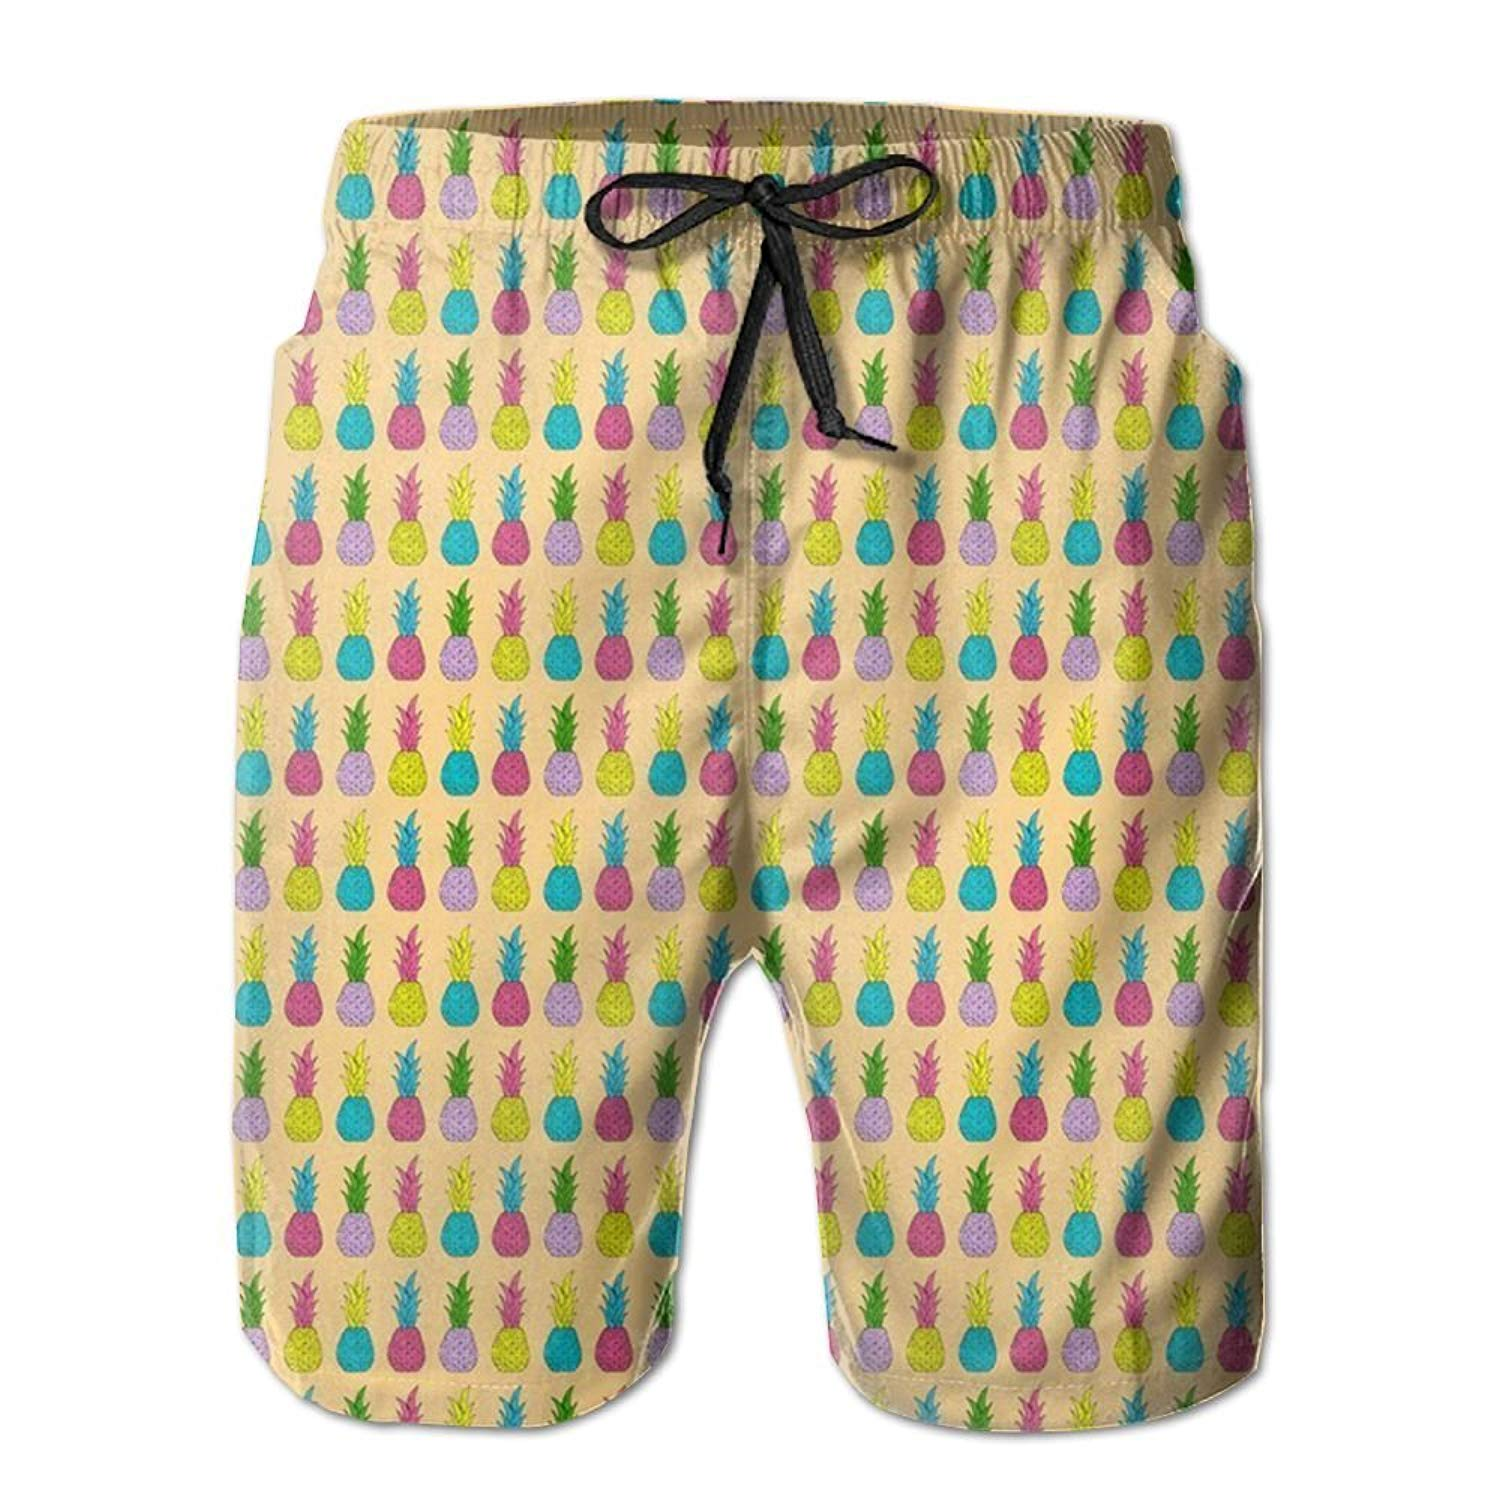 bb2729816a Get Quotations · KIOT156 Neon Pineapples Mens Summer Breathable Swim Trunks  Beach Shorts Cargo Shorts